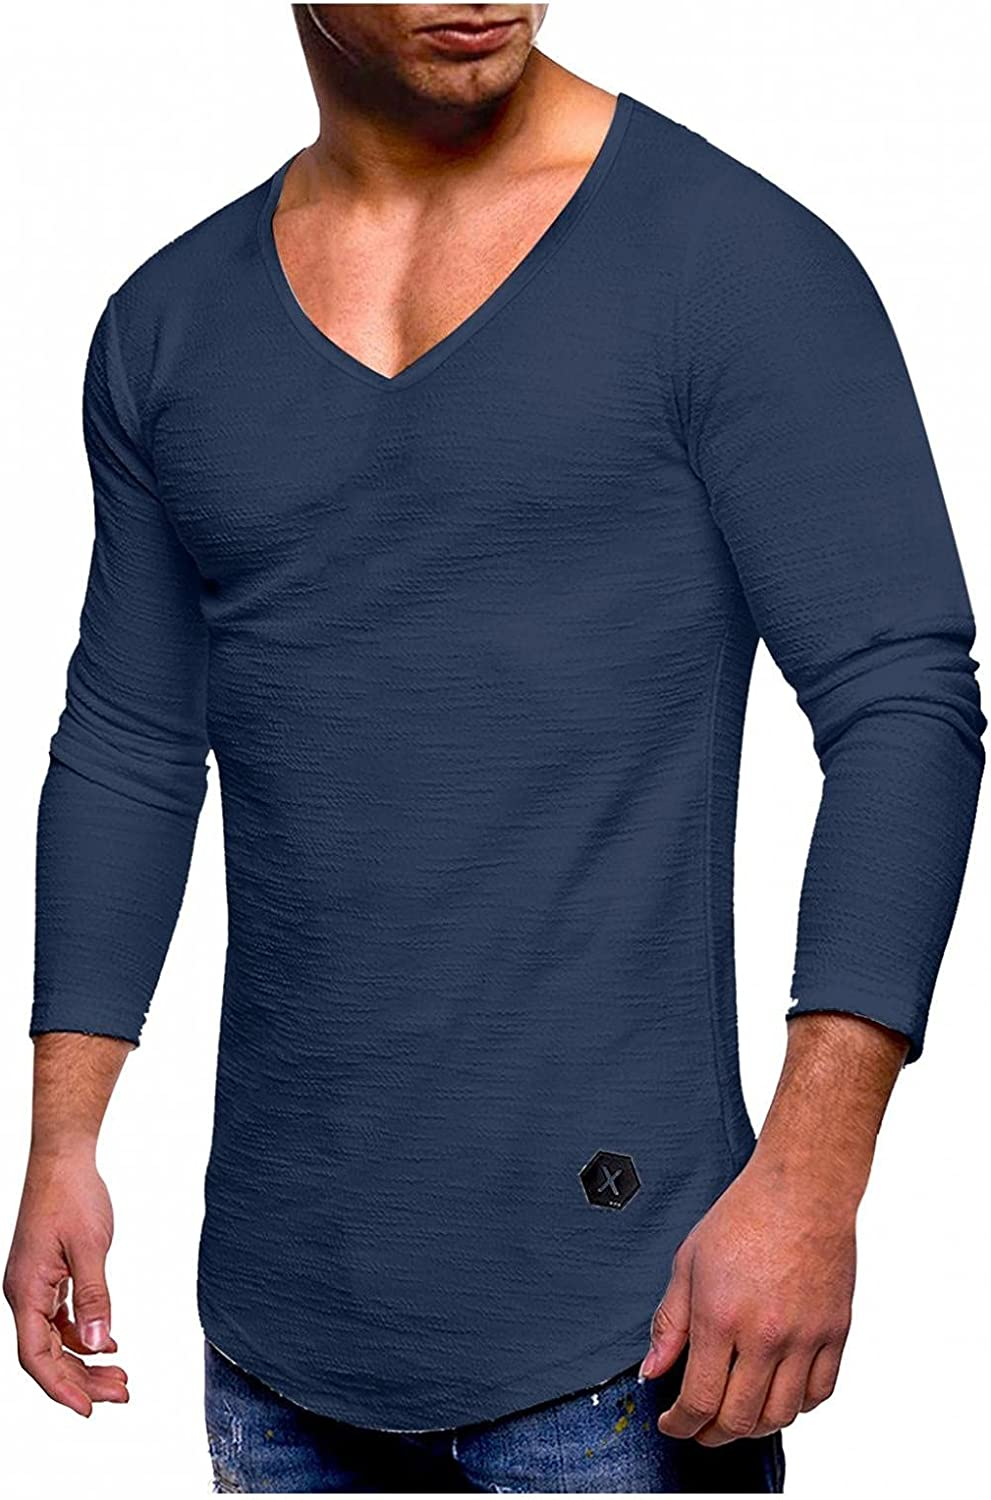 Mens Pullover Tops Solid Long Sleeve V-Neck Shirts Soft Comfy Cotton Blouse Gym Workout Quick-Dry T Shirts Muscle Top